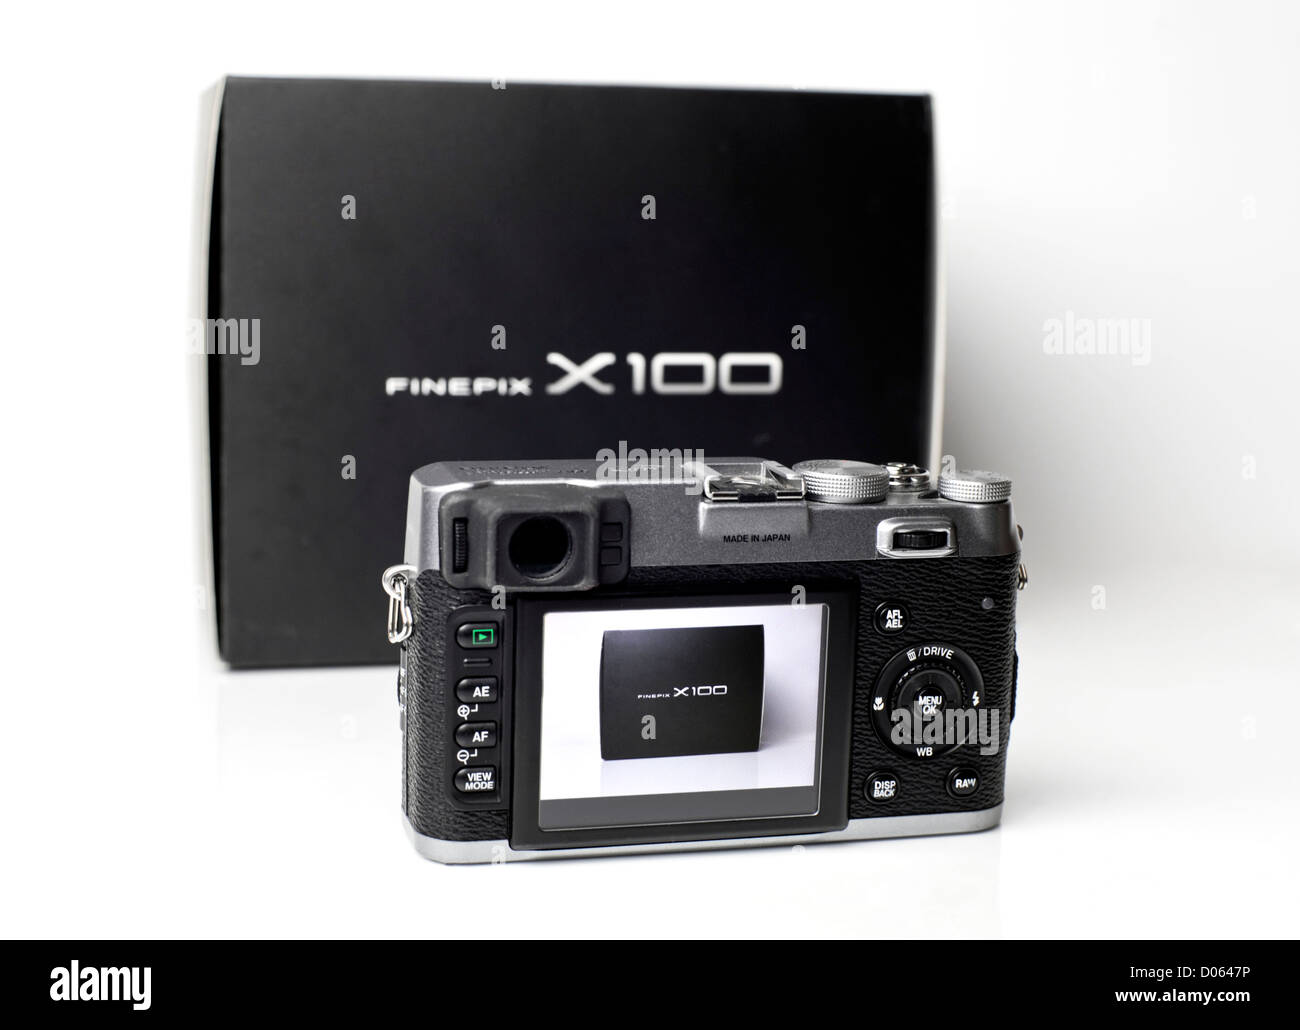 Fugi Fine Pix X100 DSLR camera front view with after market lens hood - Stock Image